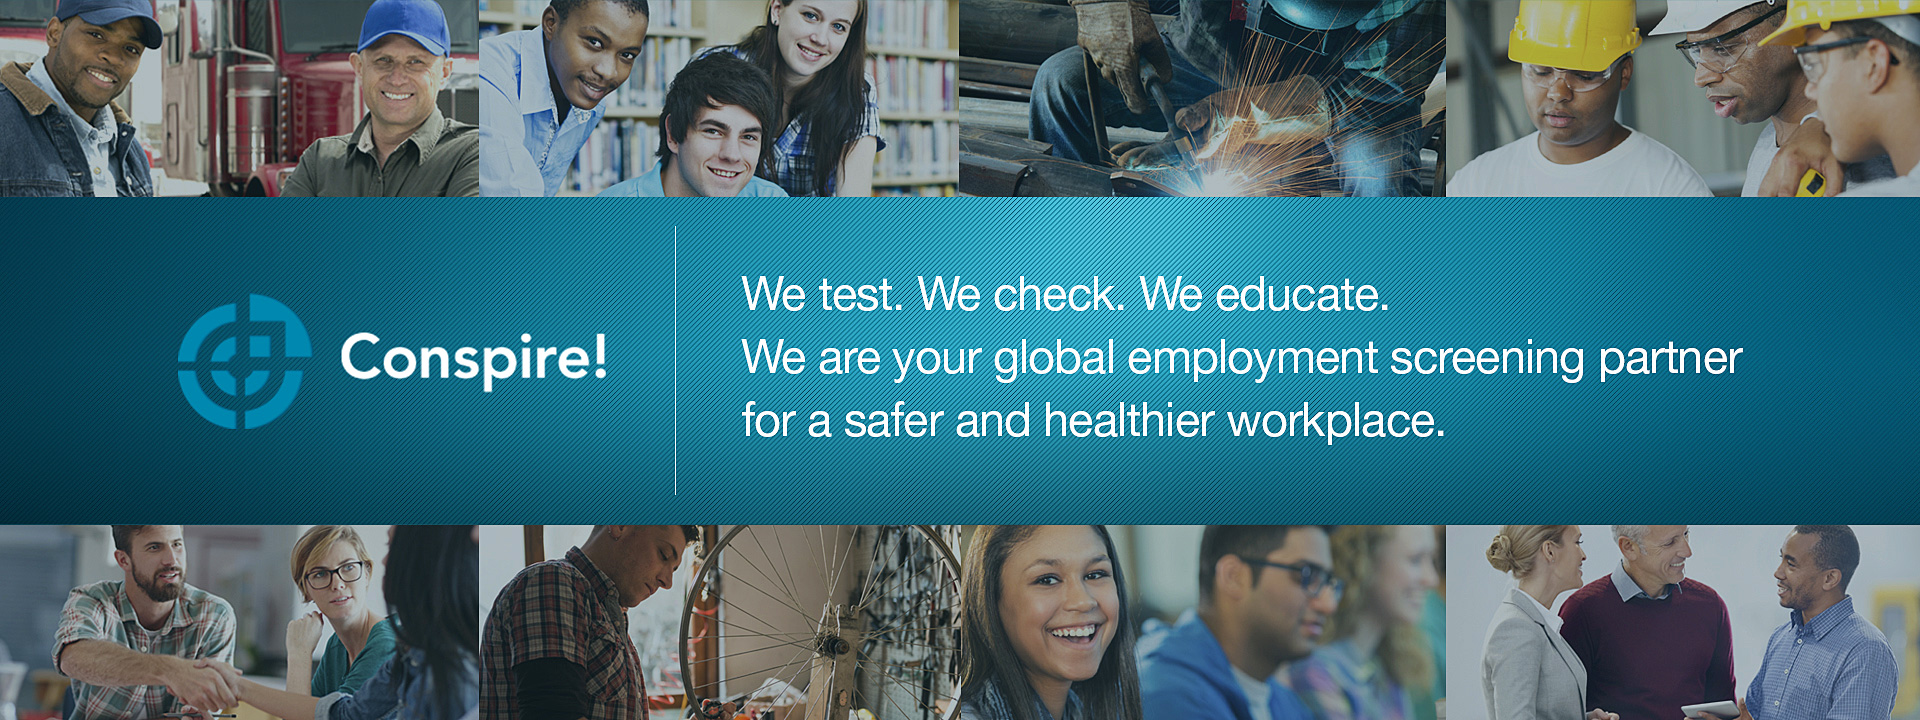 Conspire - We test. We check. We educate. We are Your global employment screening partner for a safer and healthier workplace.